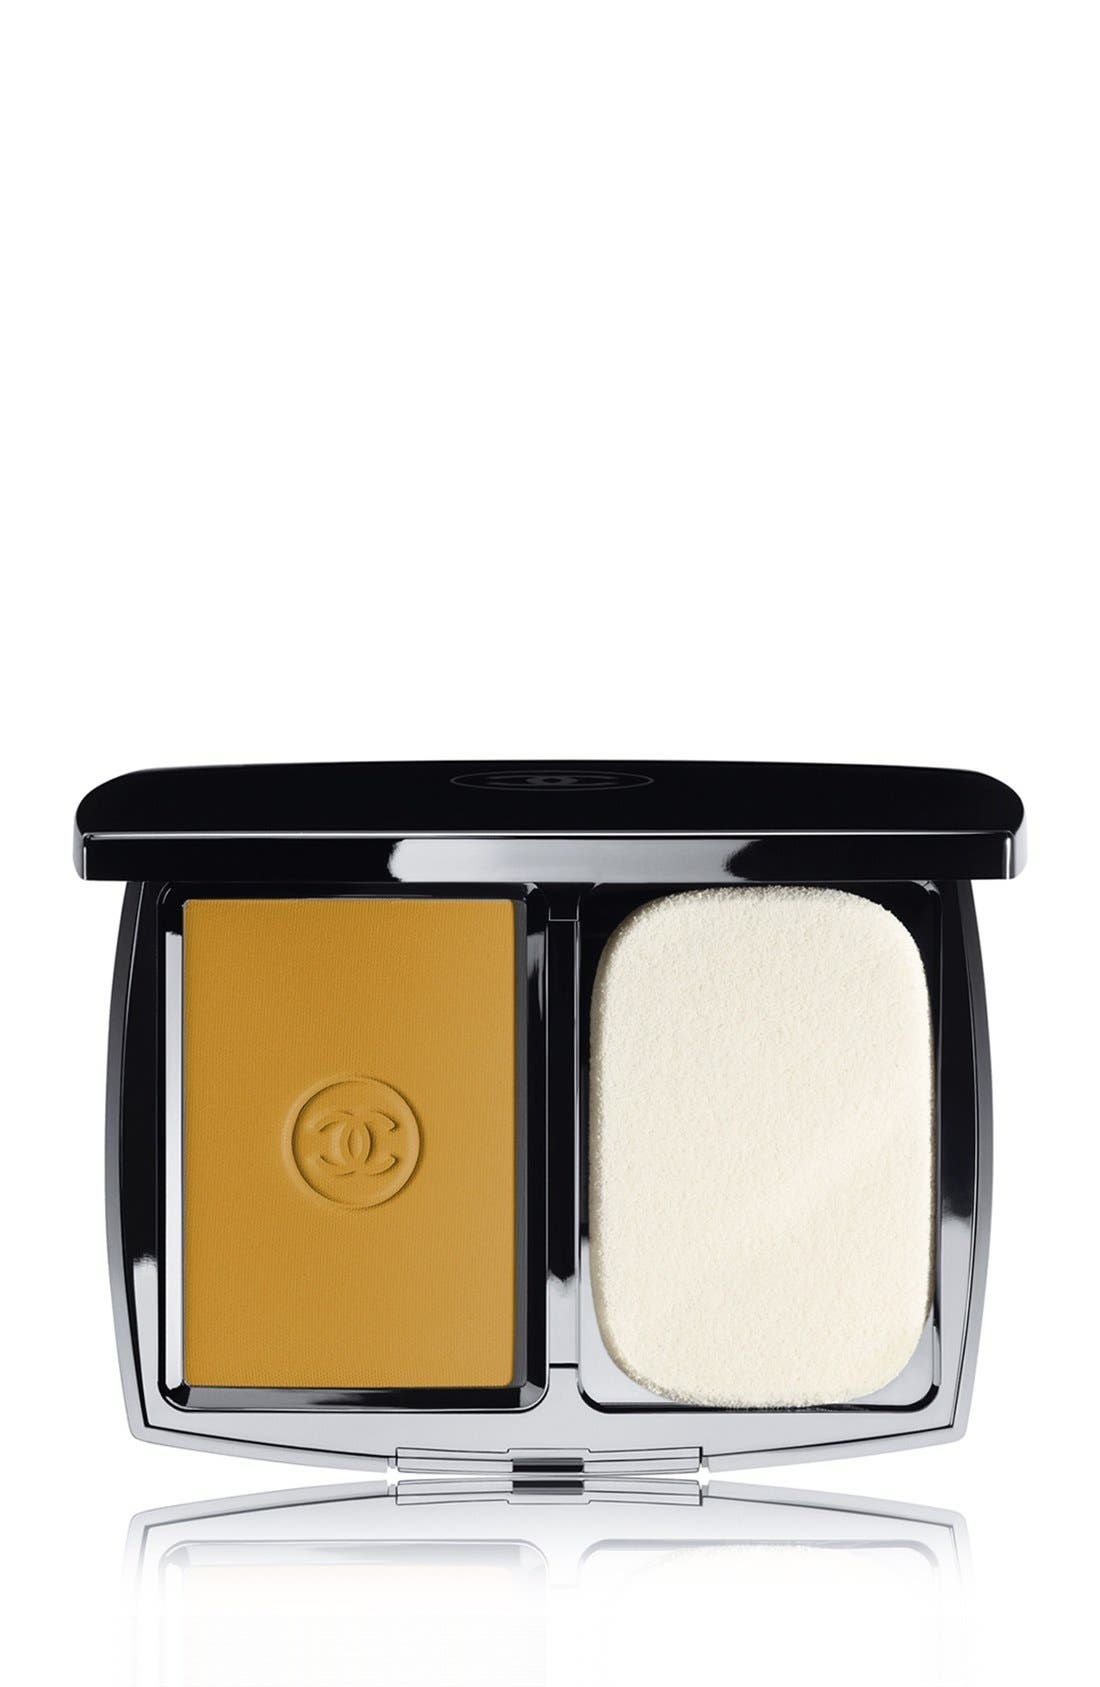 DOUBLE PERFECTION LUMIÈRE<br />Long-Wear Flawless Sunscreen Powder Makeup Broad Spectrum SPF 15,                             Main thumbnail 13, color,